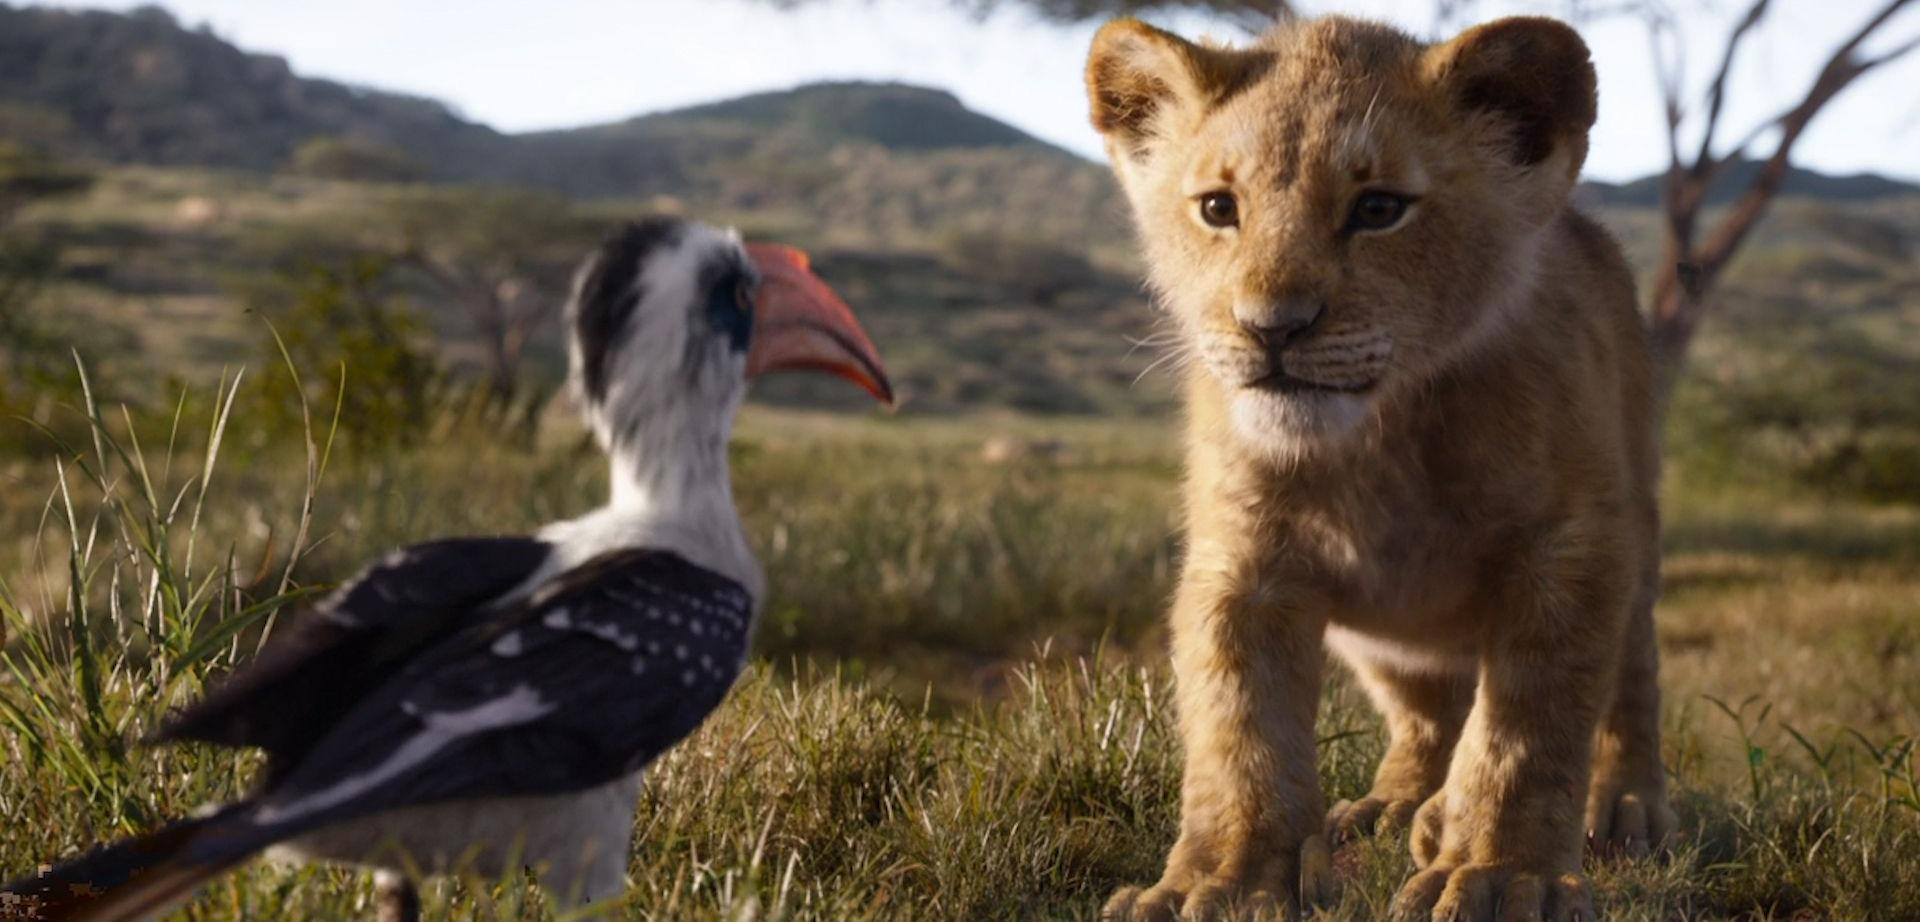 Is The 'Lion King' Remake Good?